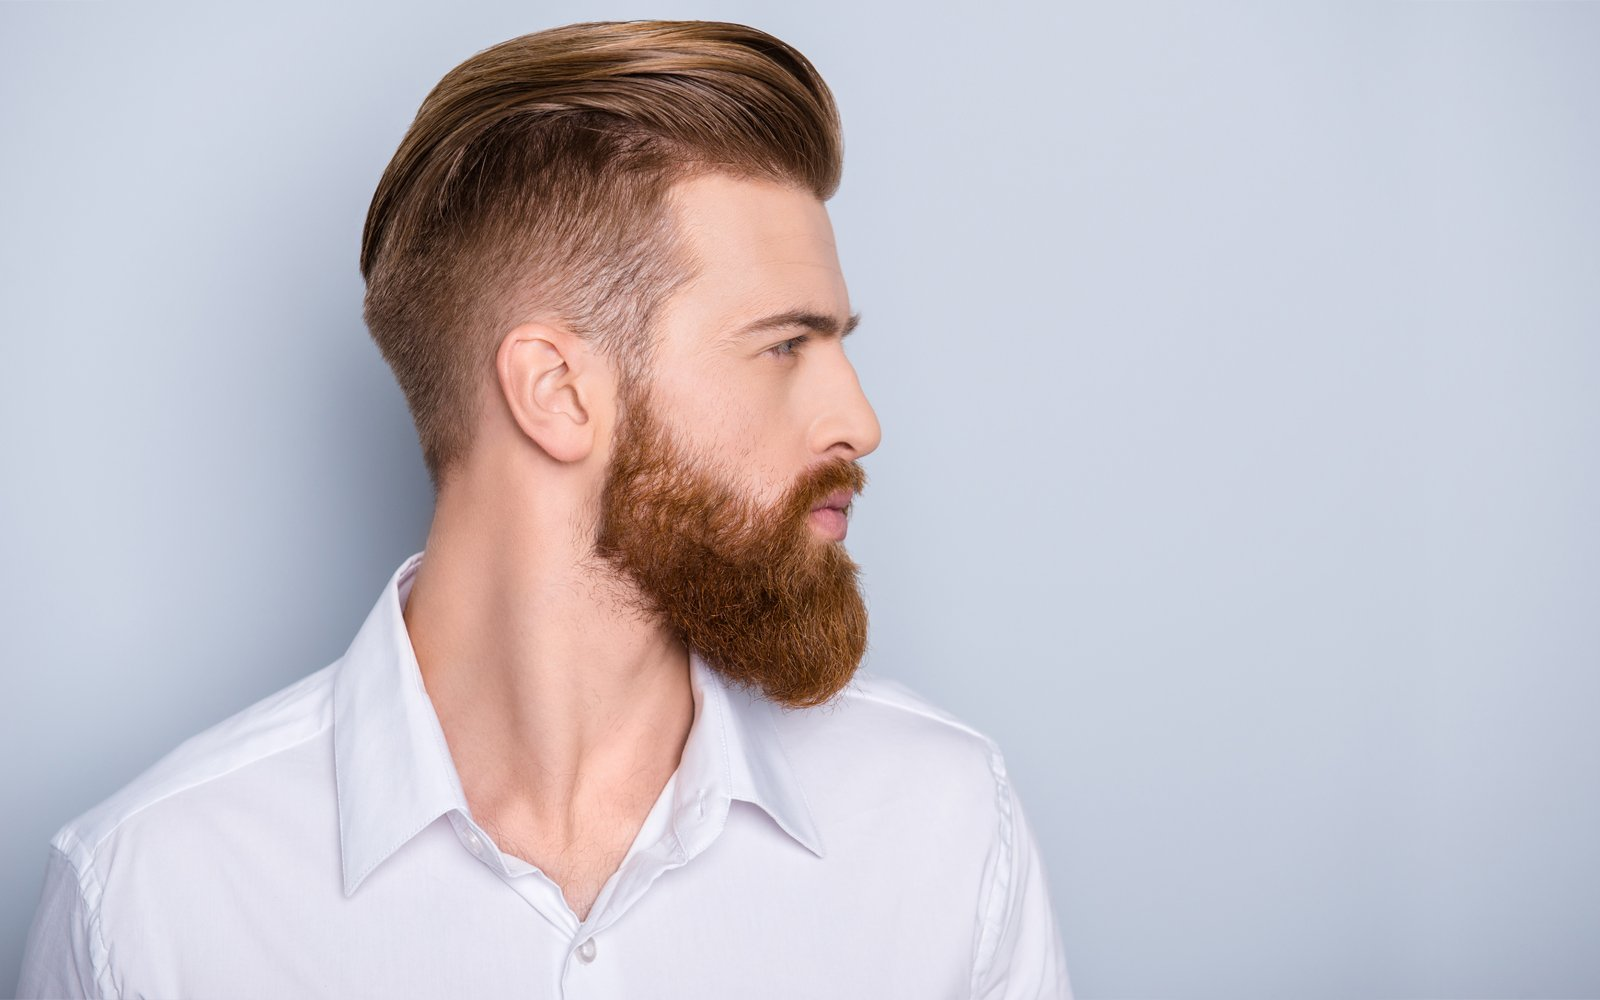 How to Grow a Thicker Beard Naturally?